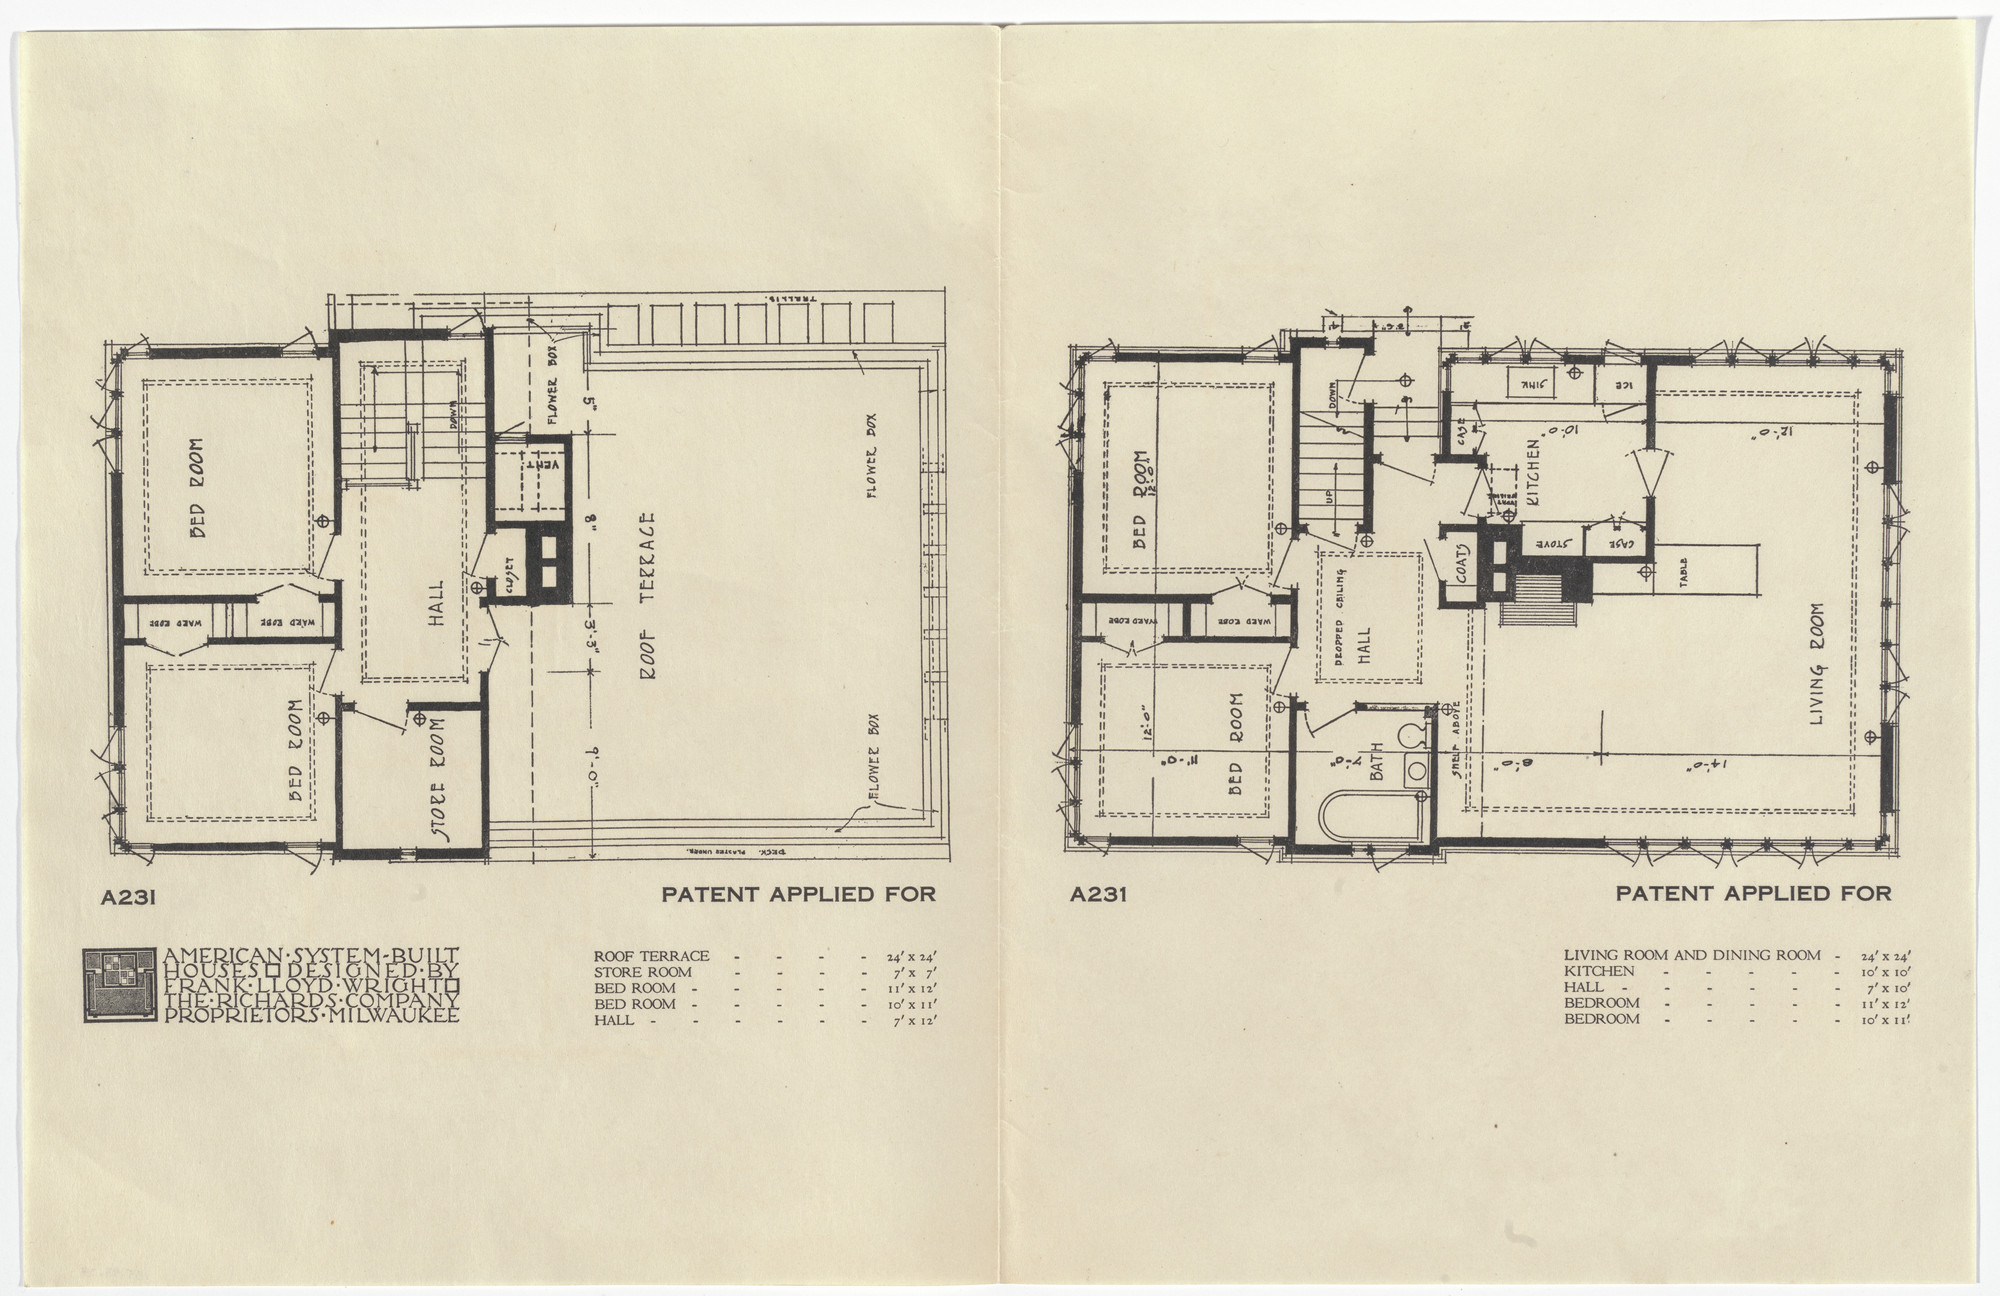 Frank Lloyd Wright. American System-Built Houses for The Richards Company project, Milwaukee, Wisconsin (Plans). 1915-17